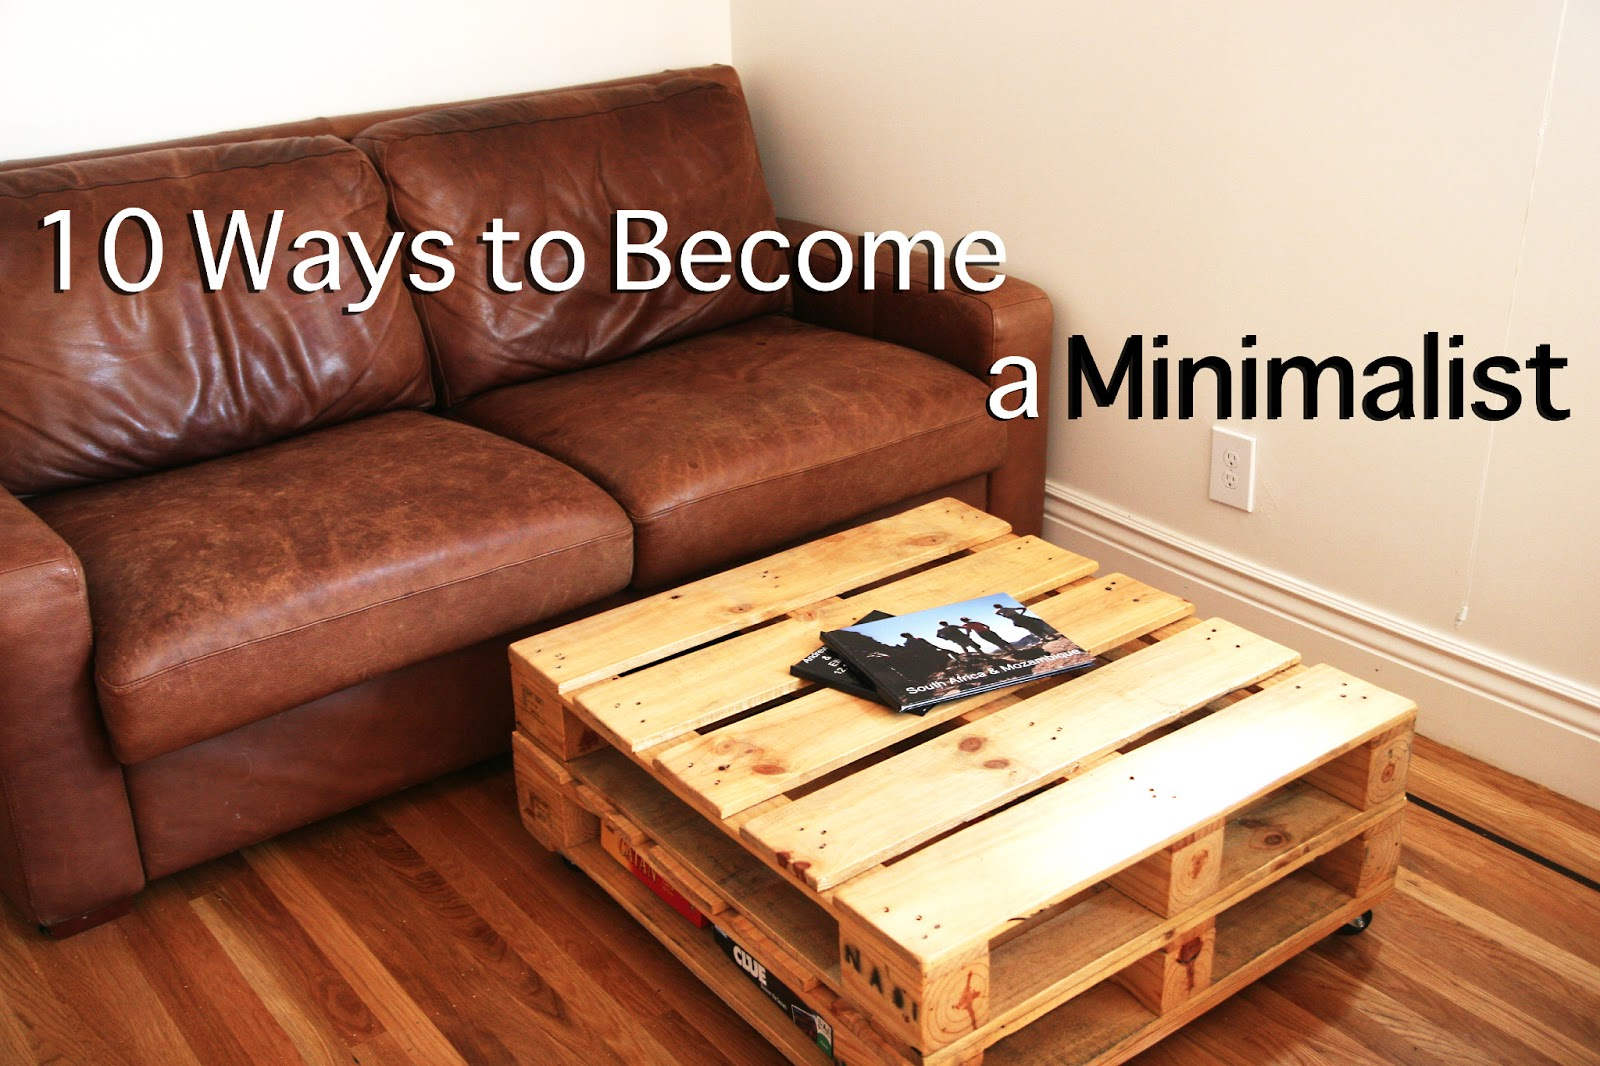 ellies wonder 10 ways to become a minimalist ForBecoming Minimalist Home